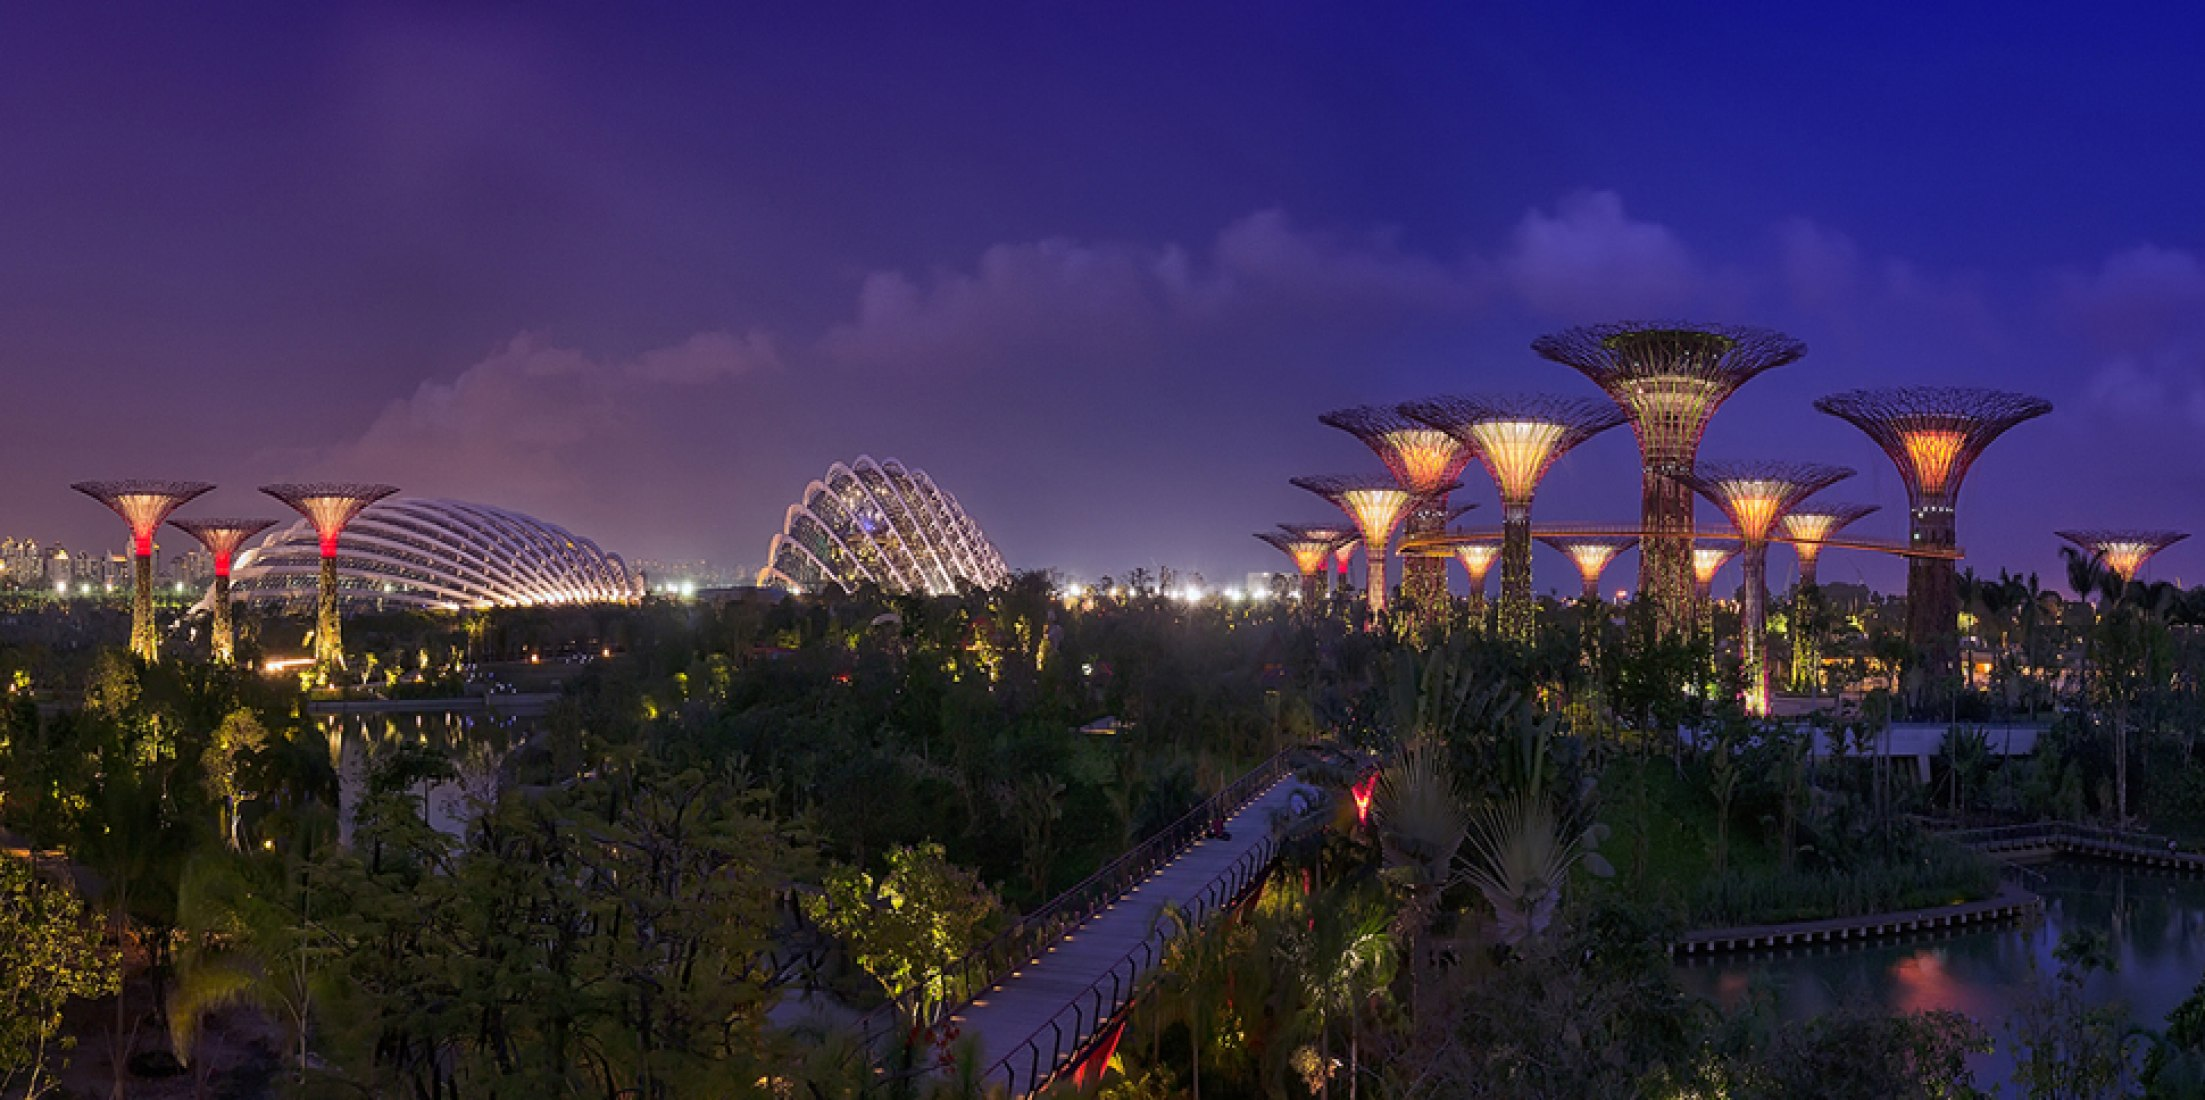 Gardens by the Bay night view by Grant Associates. Photography © Darren Chin.